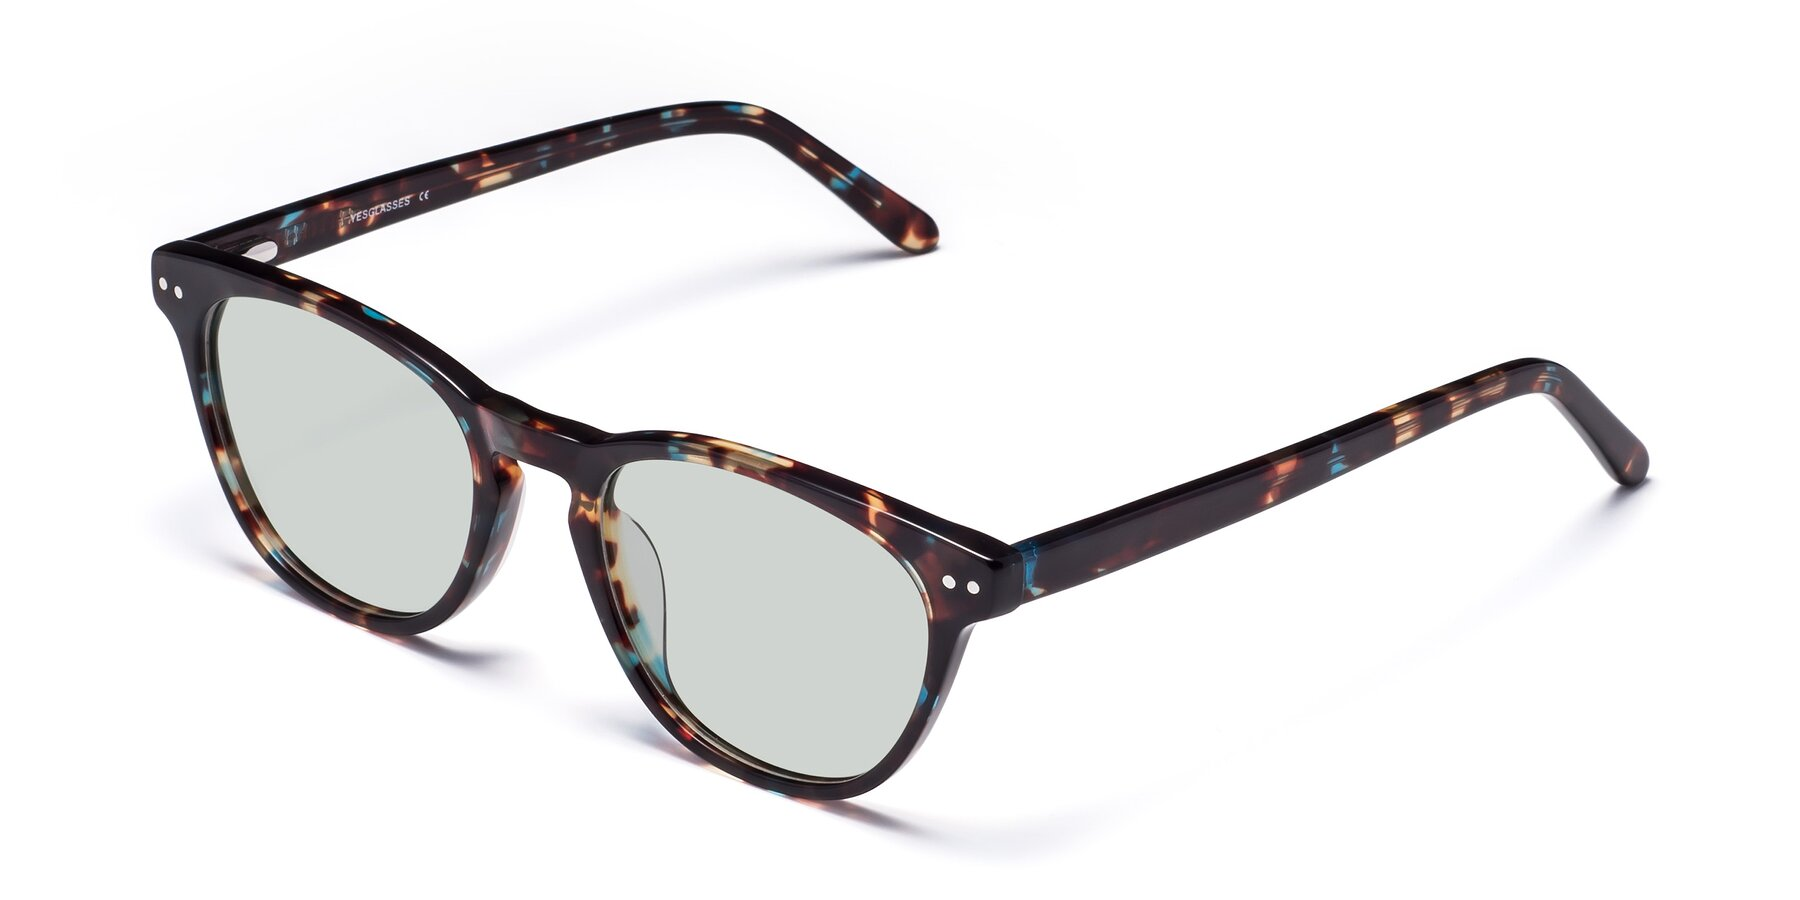 Angle of Blaze in Tortoise-Blue with Light Green Tinted Lenses